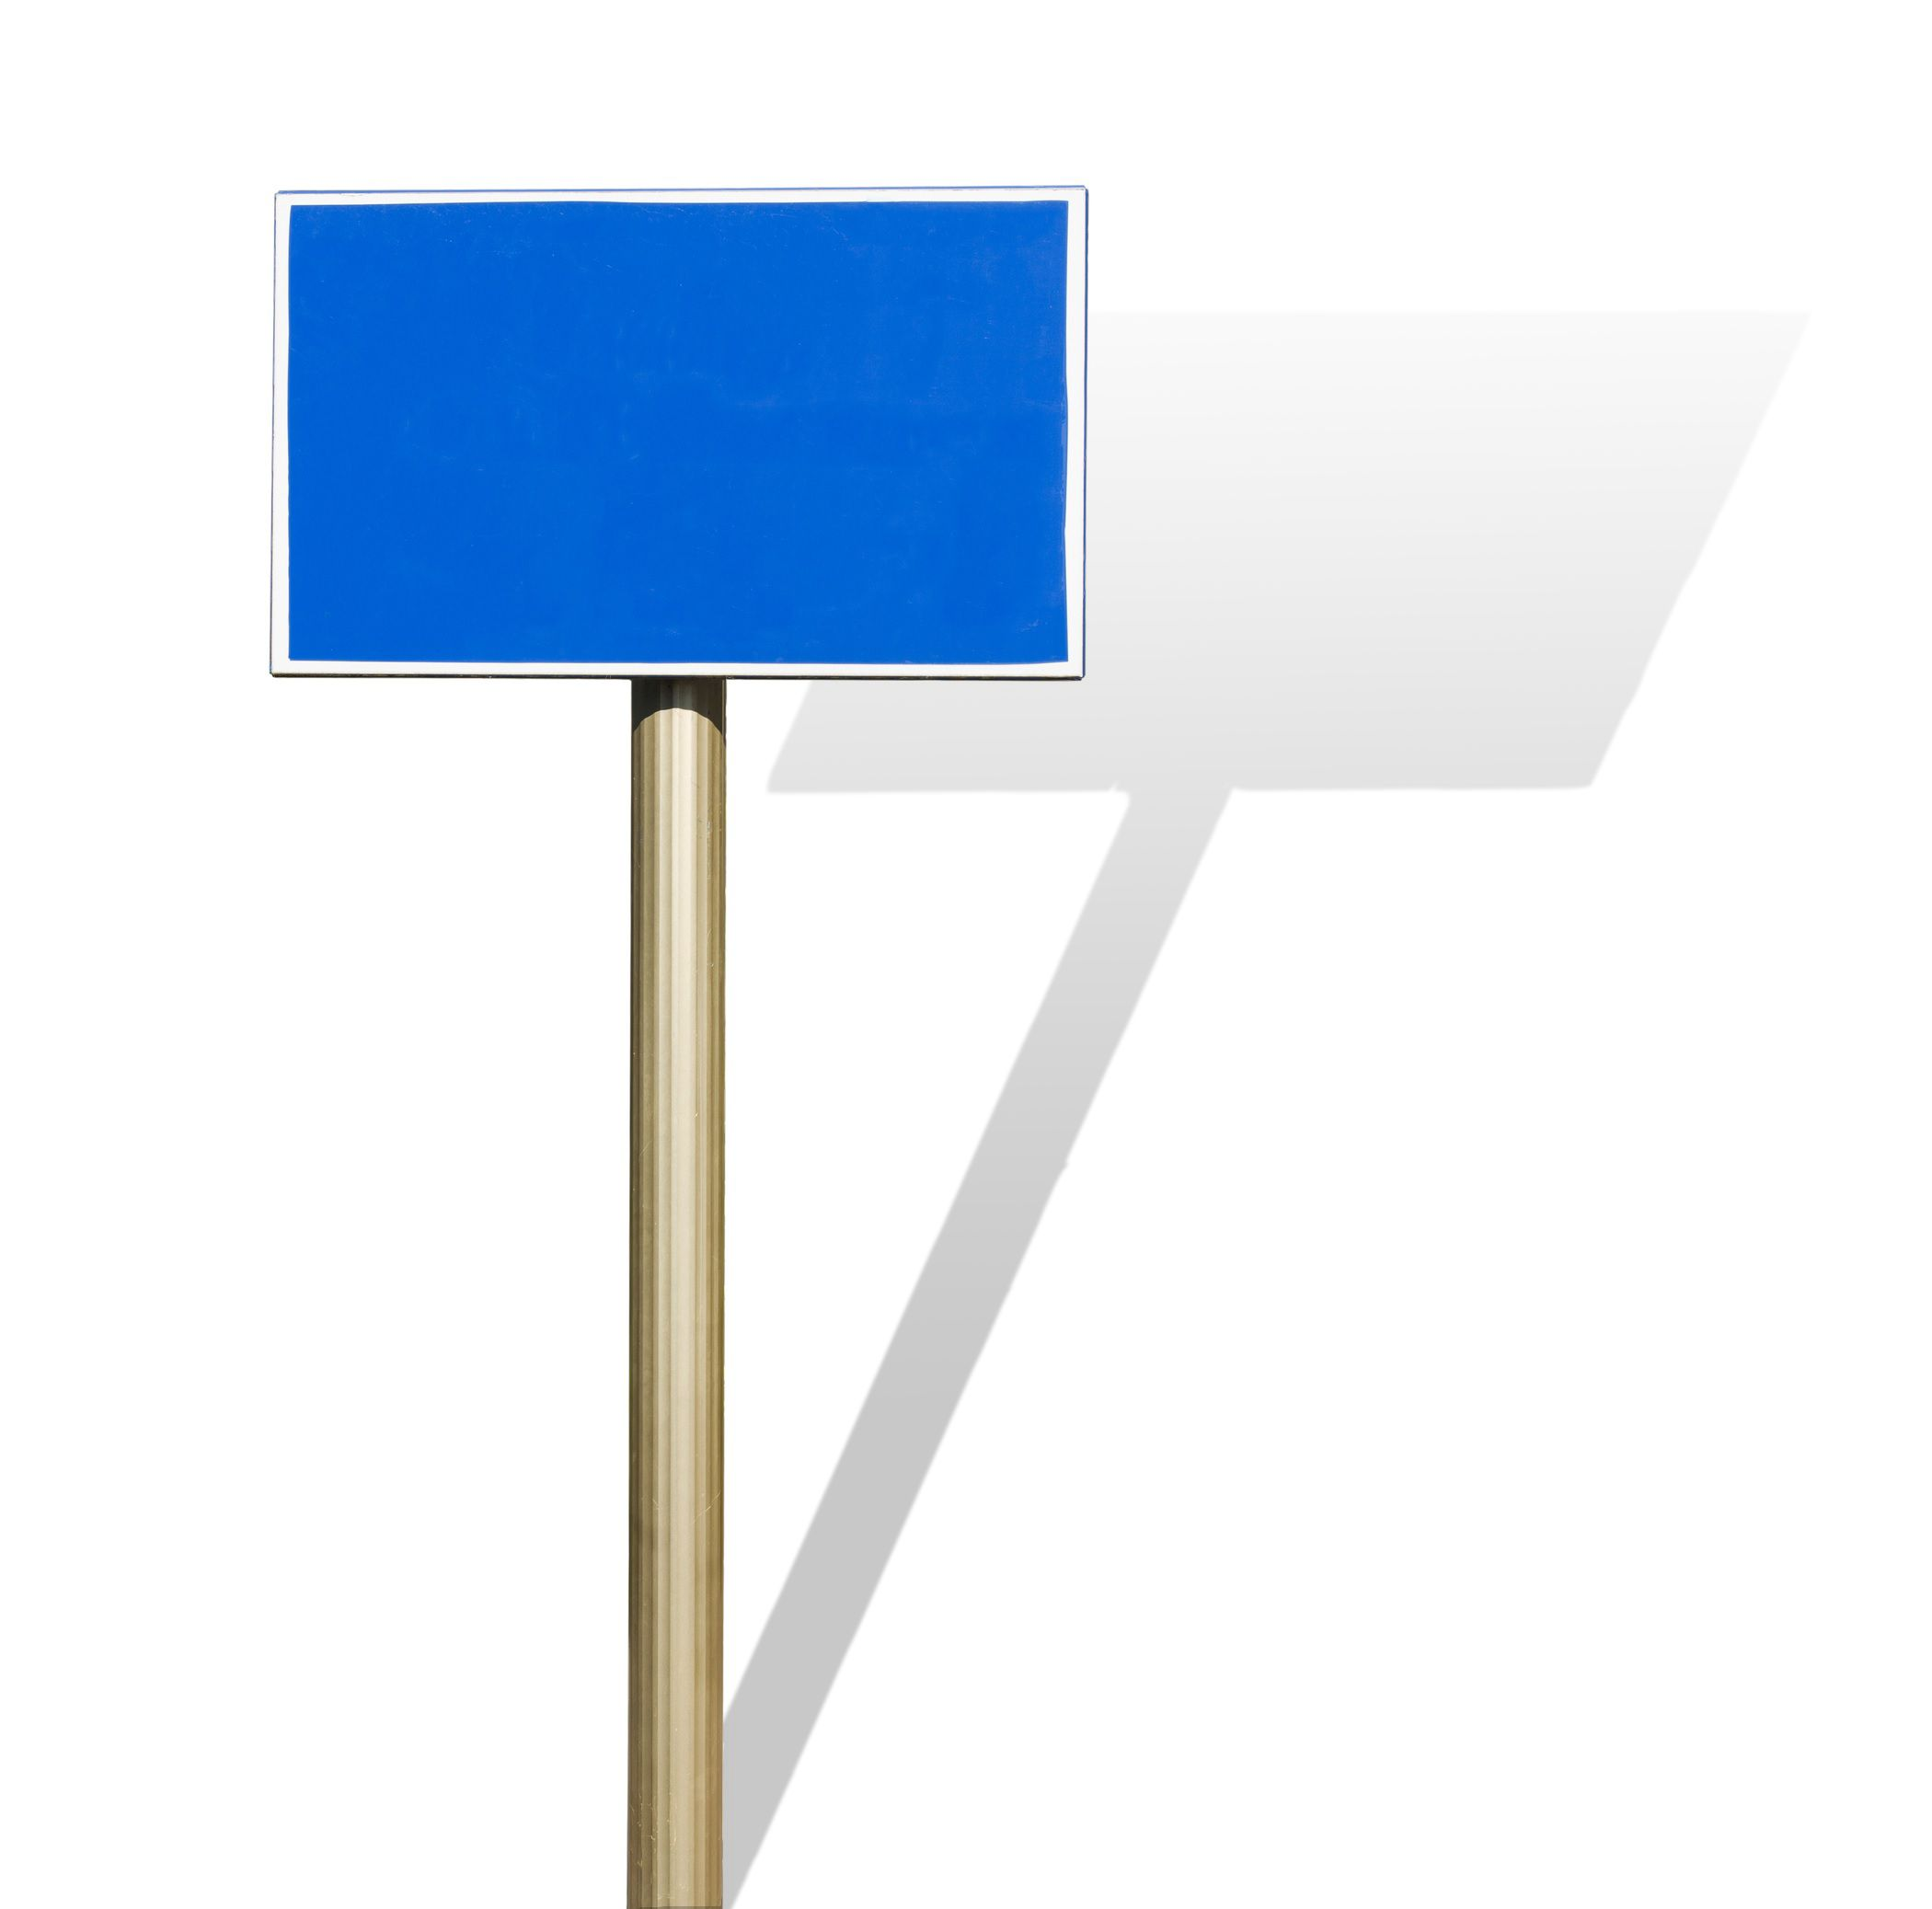 A blue sign on a pole casts a shadow on a white background.